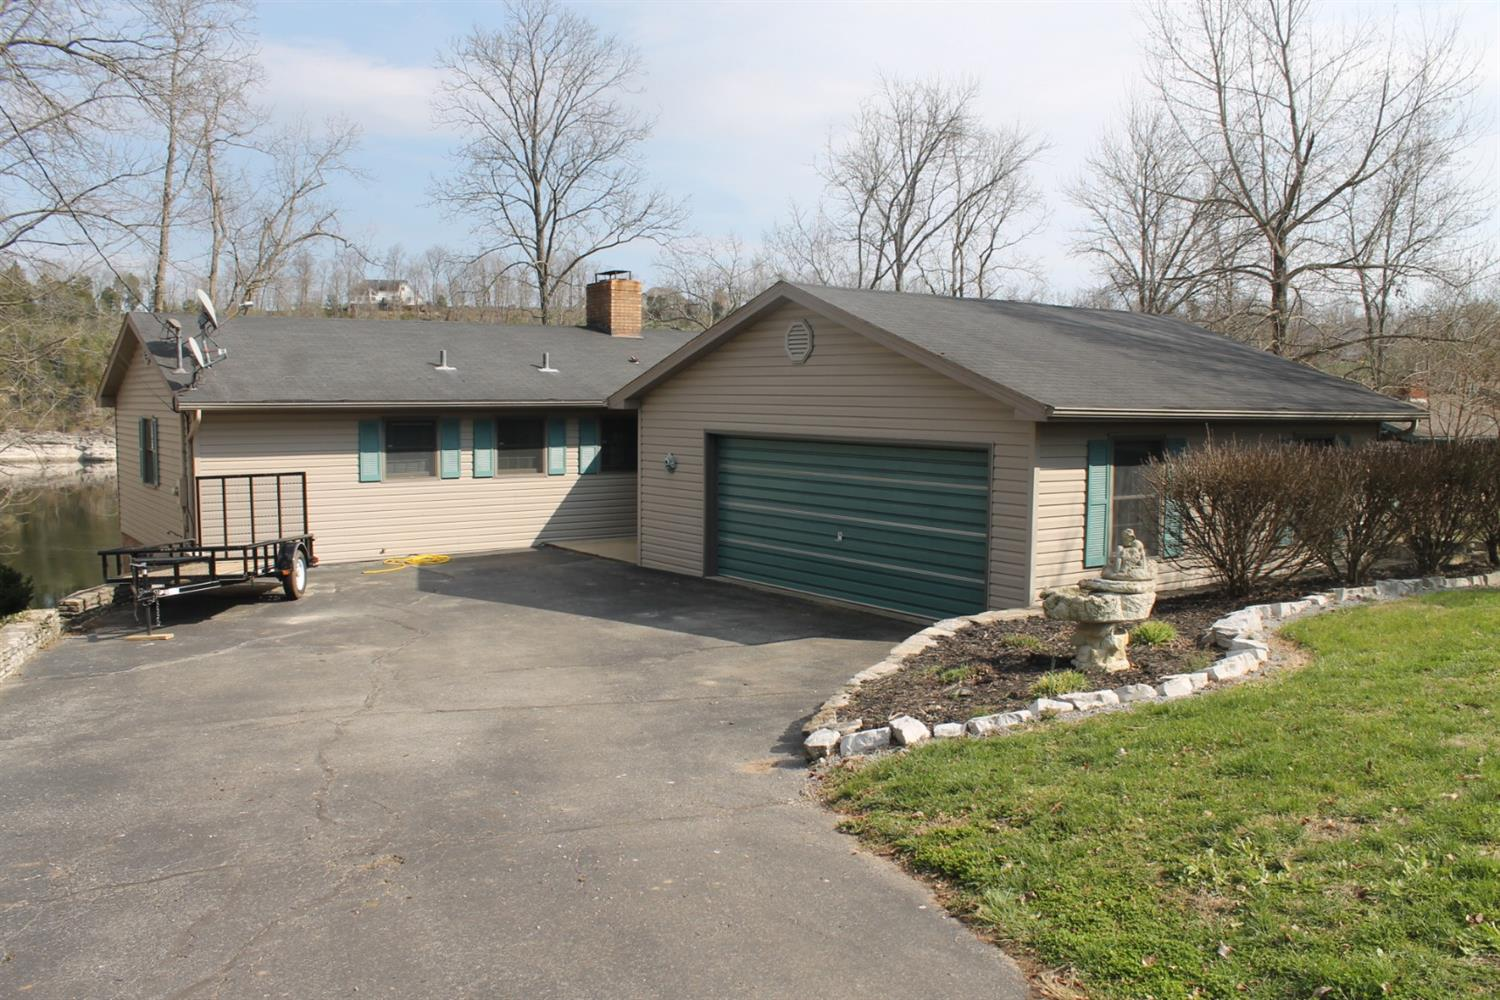 Home For Sale at 855 Hardin Hgts, Harrodsburg, KY 40330